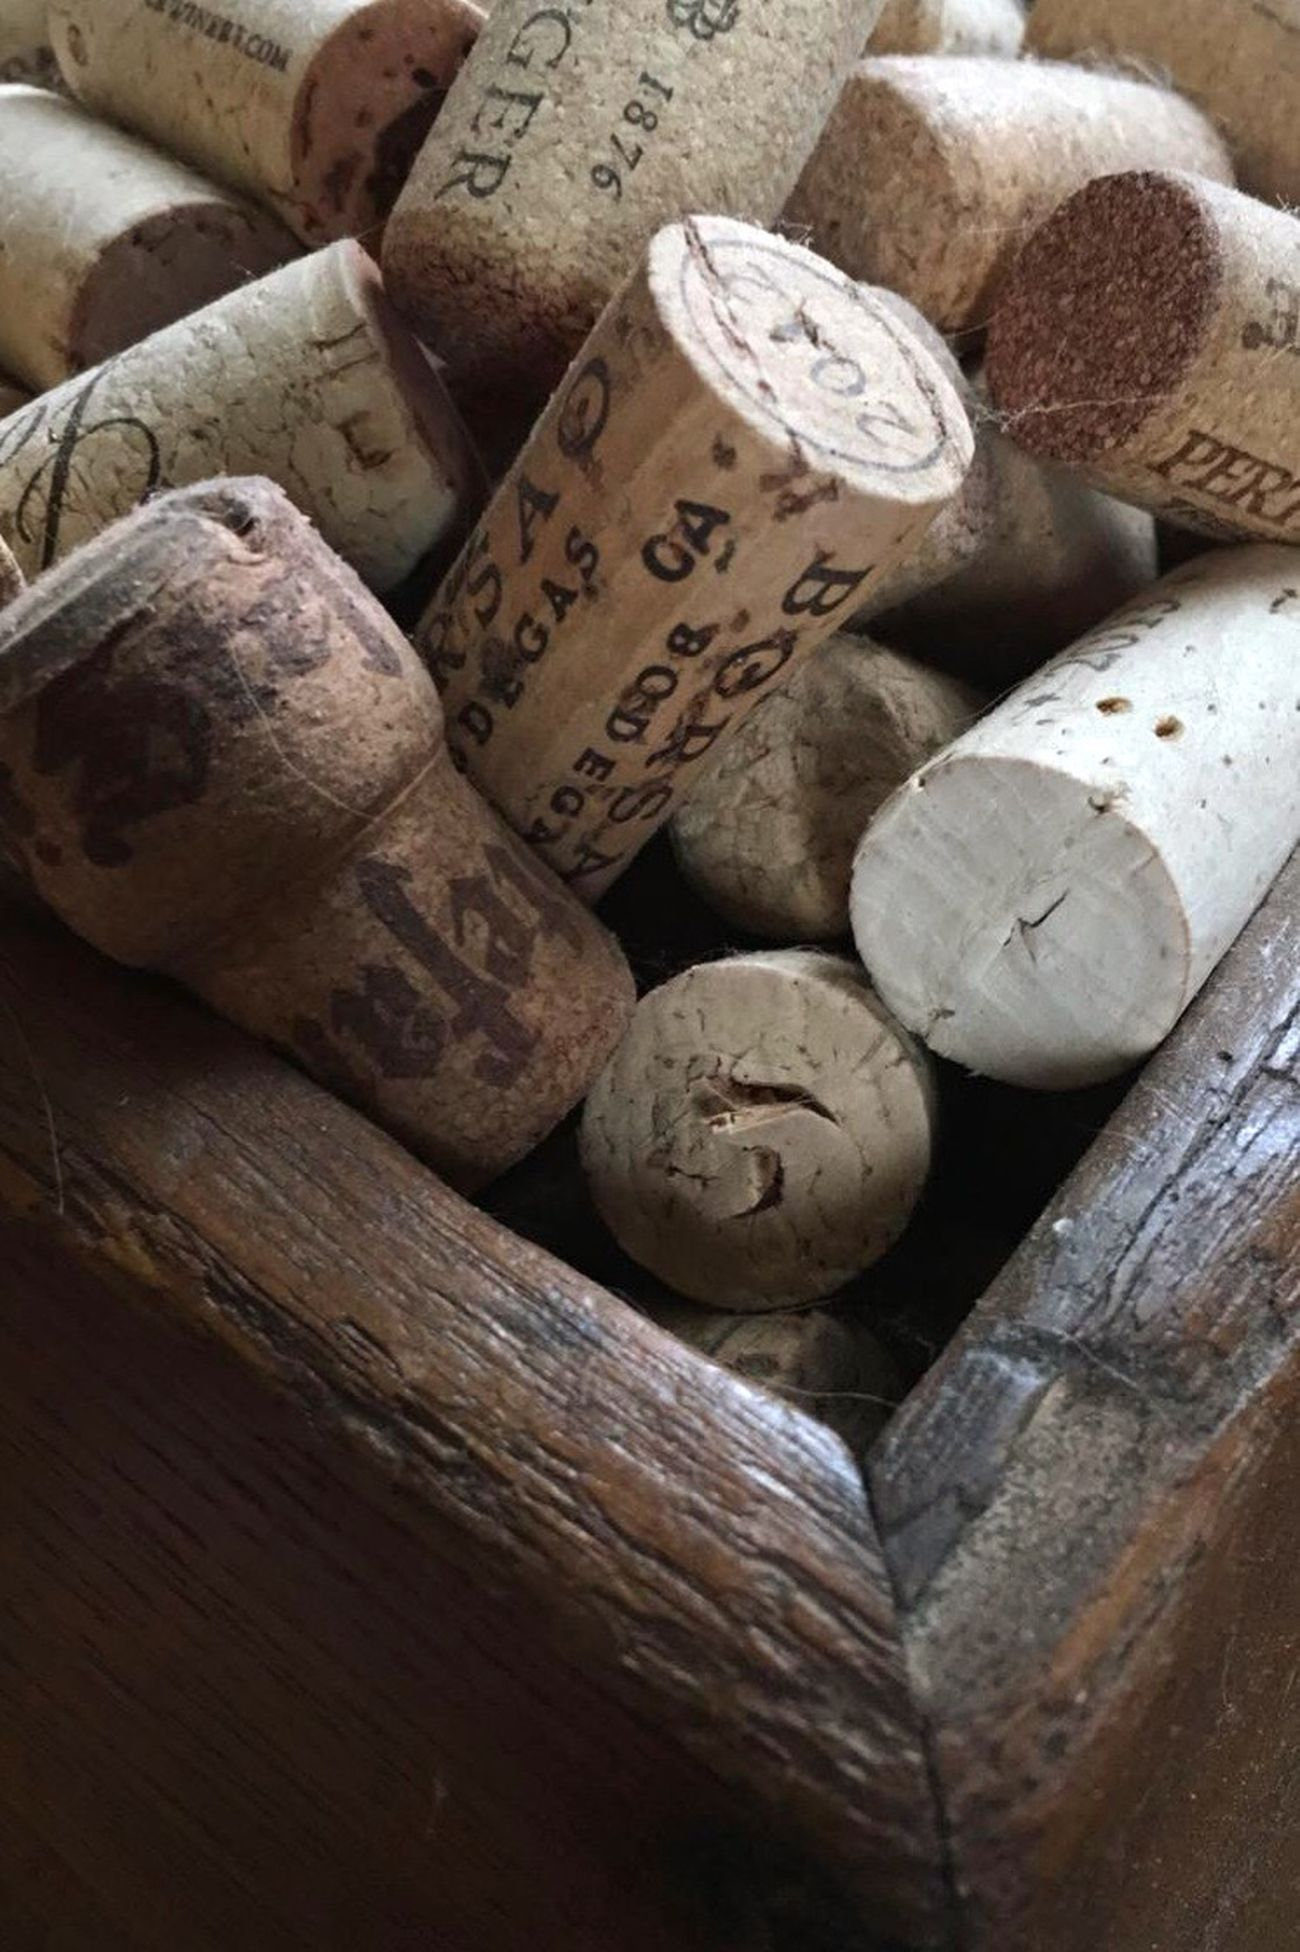 Corks No People Wine Cork Wine Backgrounds Neutral Wood Drink Close-up Perspective Brown